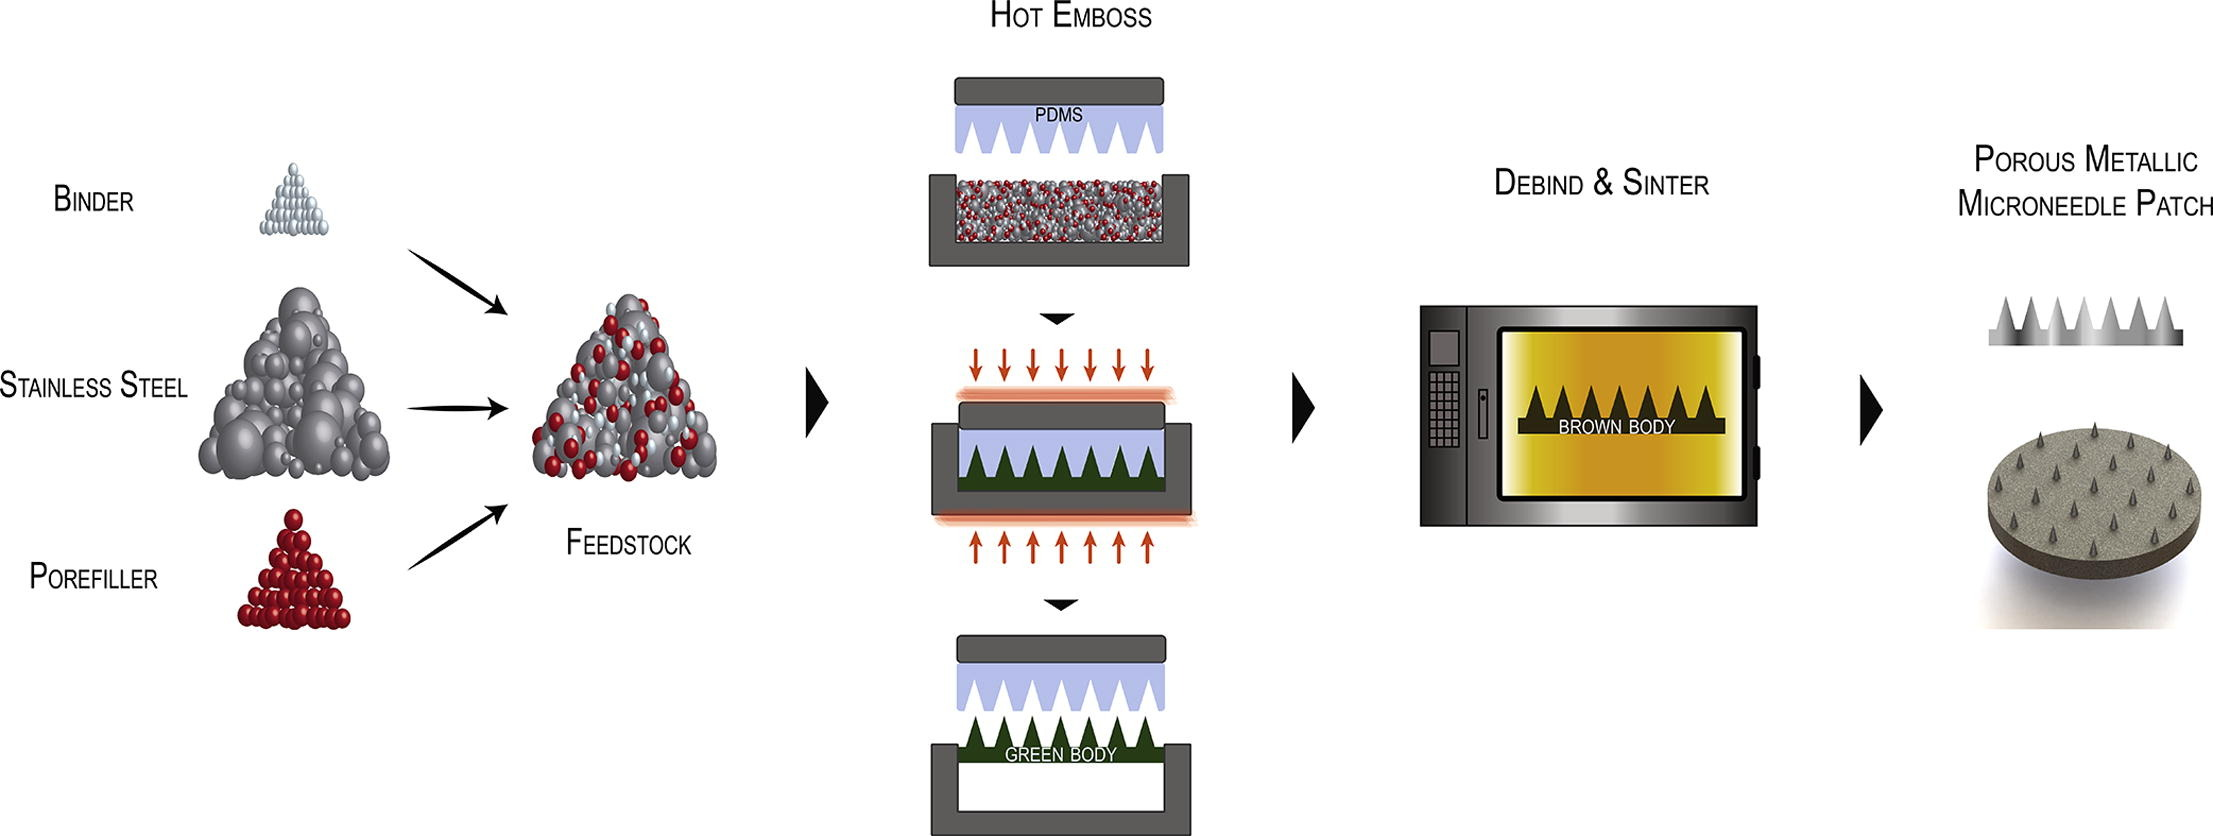 Metallic microneedles with interconnected porosity: A scalable platform for biosensing and drug delivery